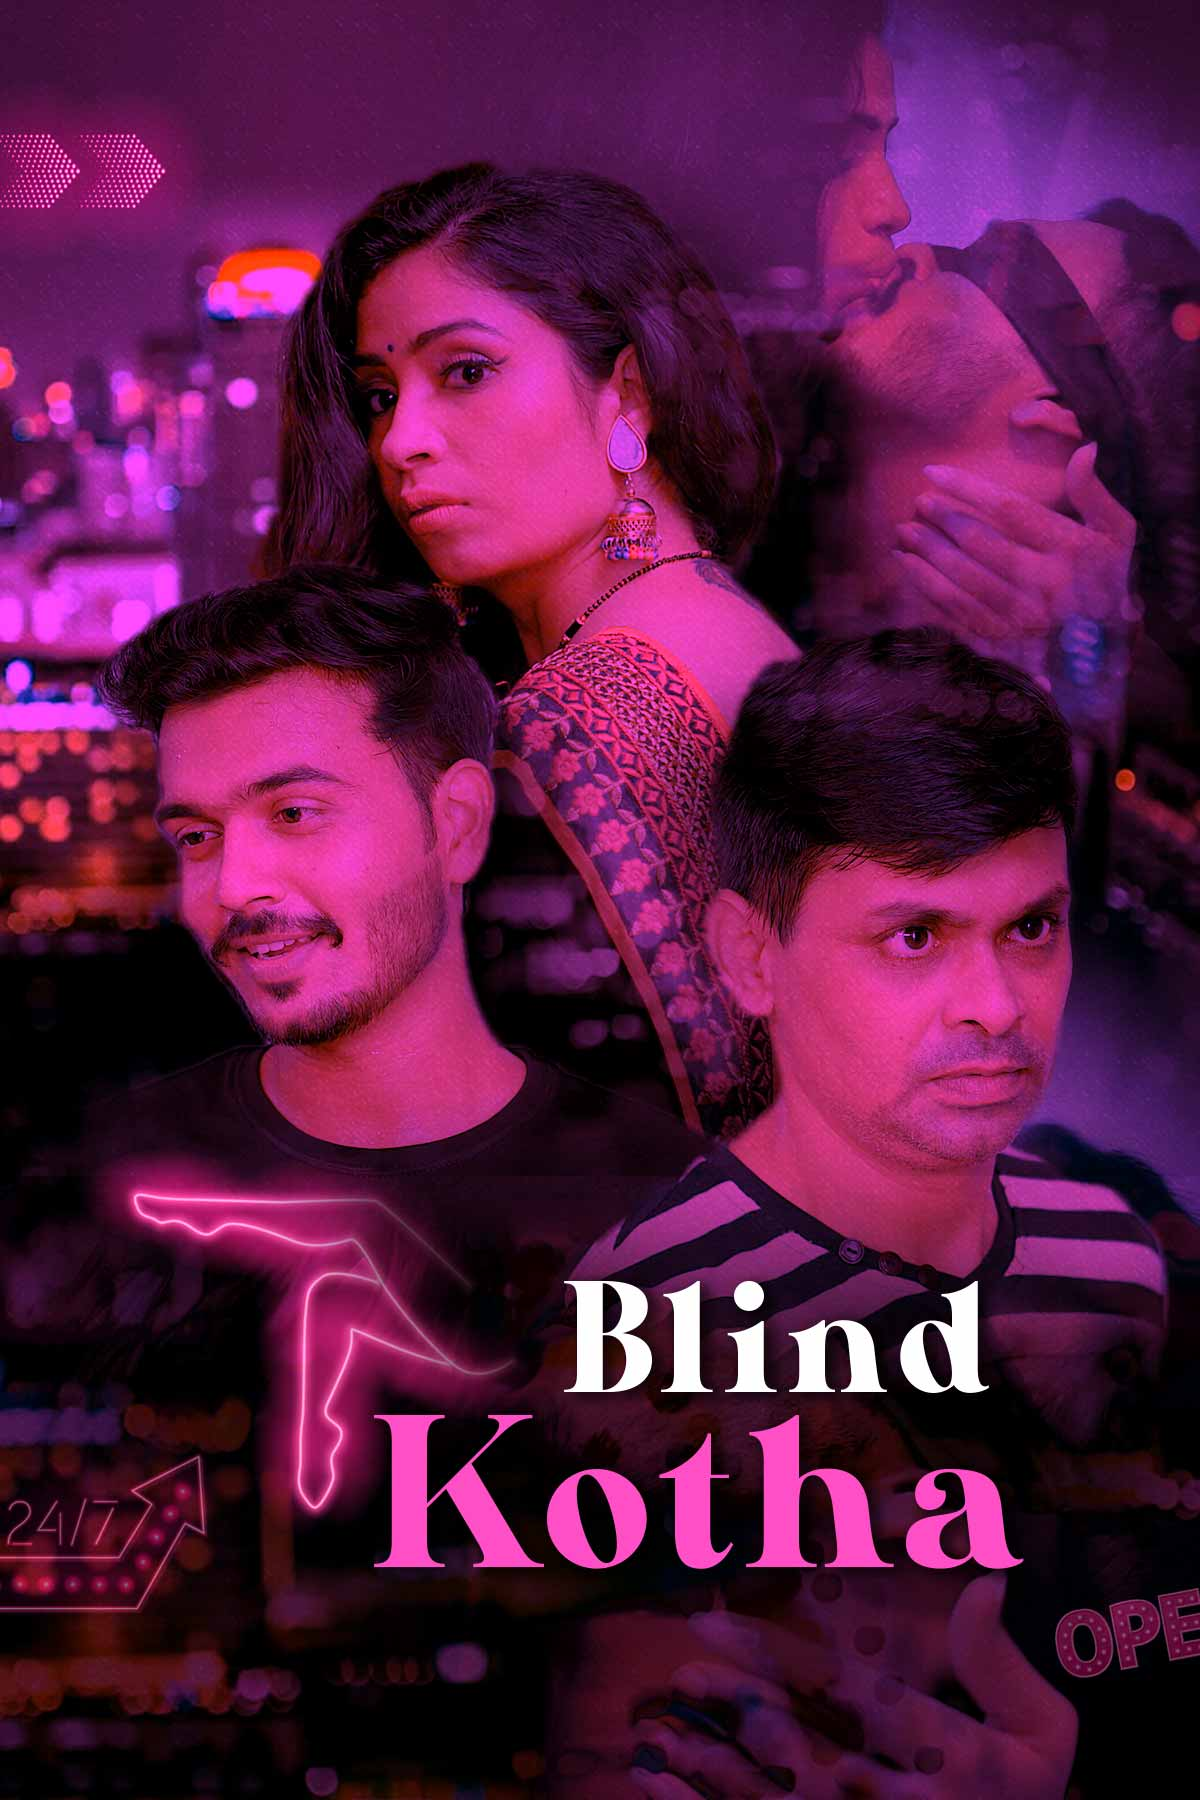 18+ Blind Kotha 2020 S01 Hindi Complete Kooku App Web Series 720p HDRip 300MB x264 AAC